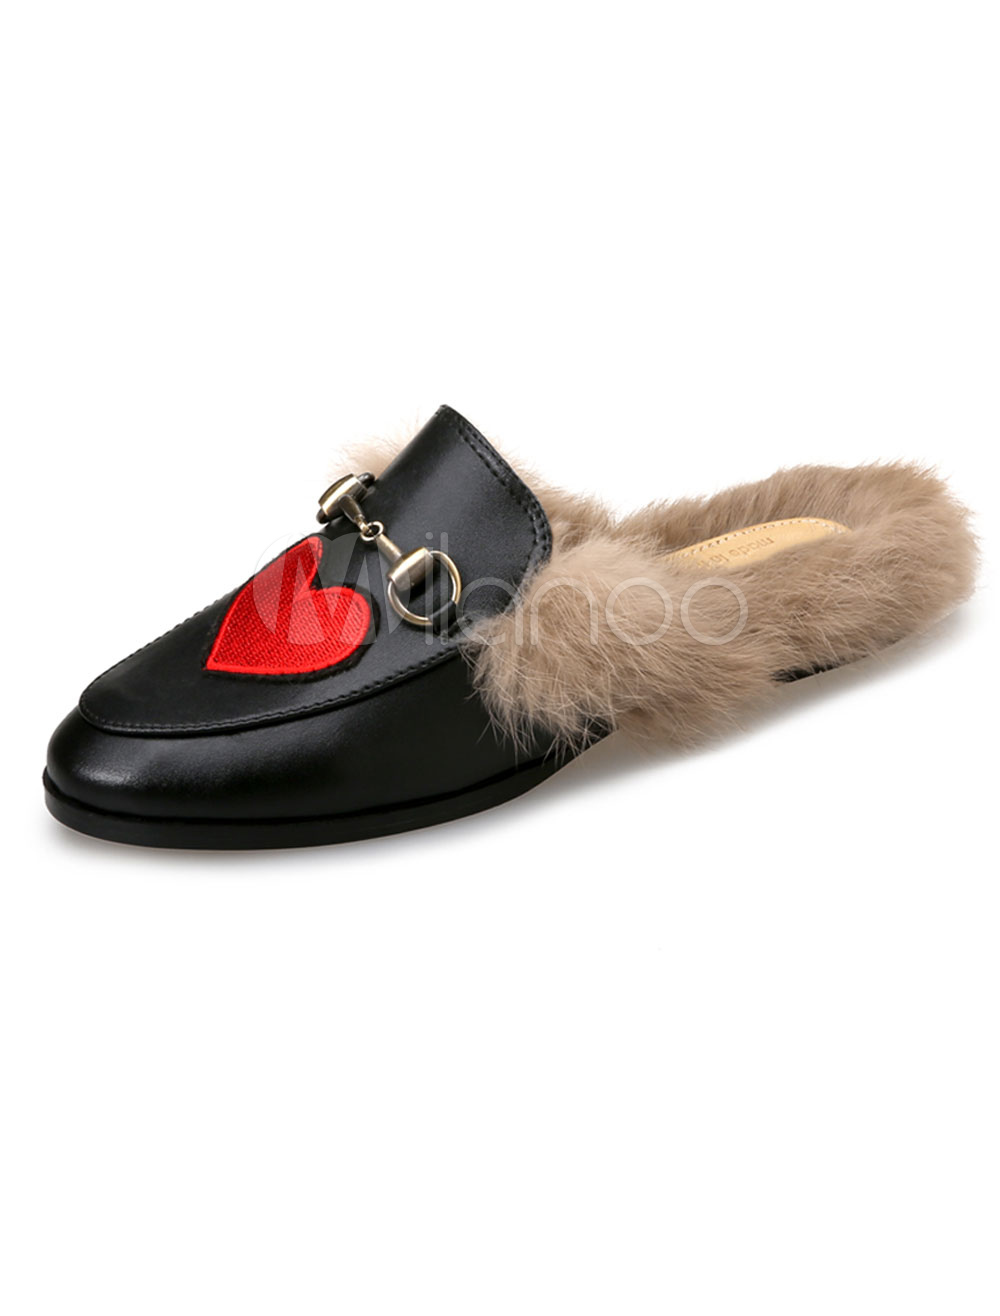 Buy Black Mule Loafers Round Toe Embroidered Mules Women Fur Detail Slip On Loafer Shoes for $39.99 in Milanoo store